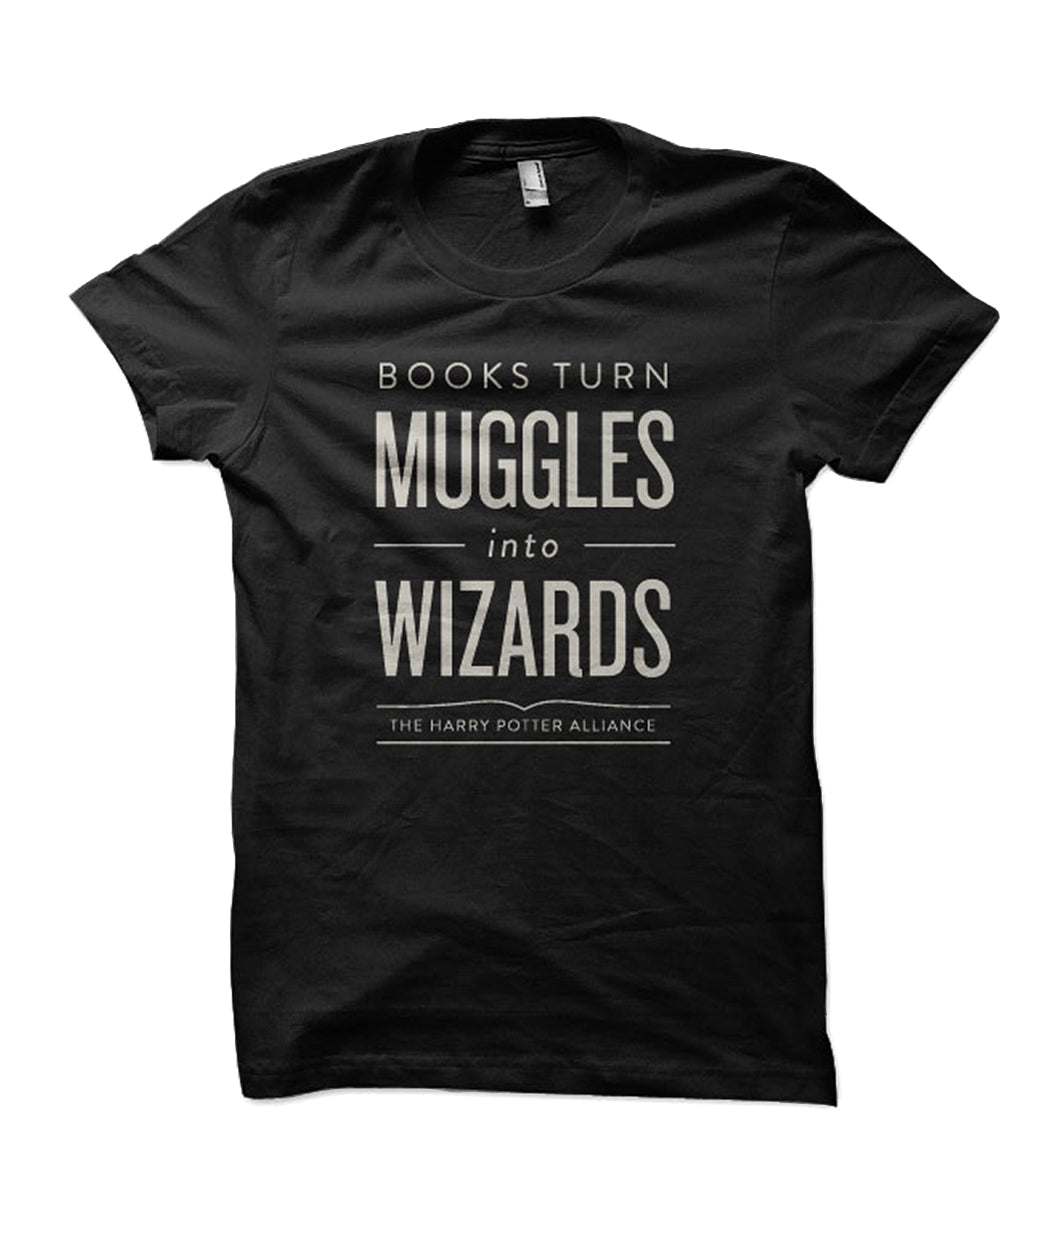 Books Turn Muggles into Wizards Shirt - Staff